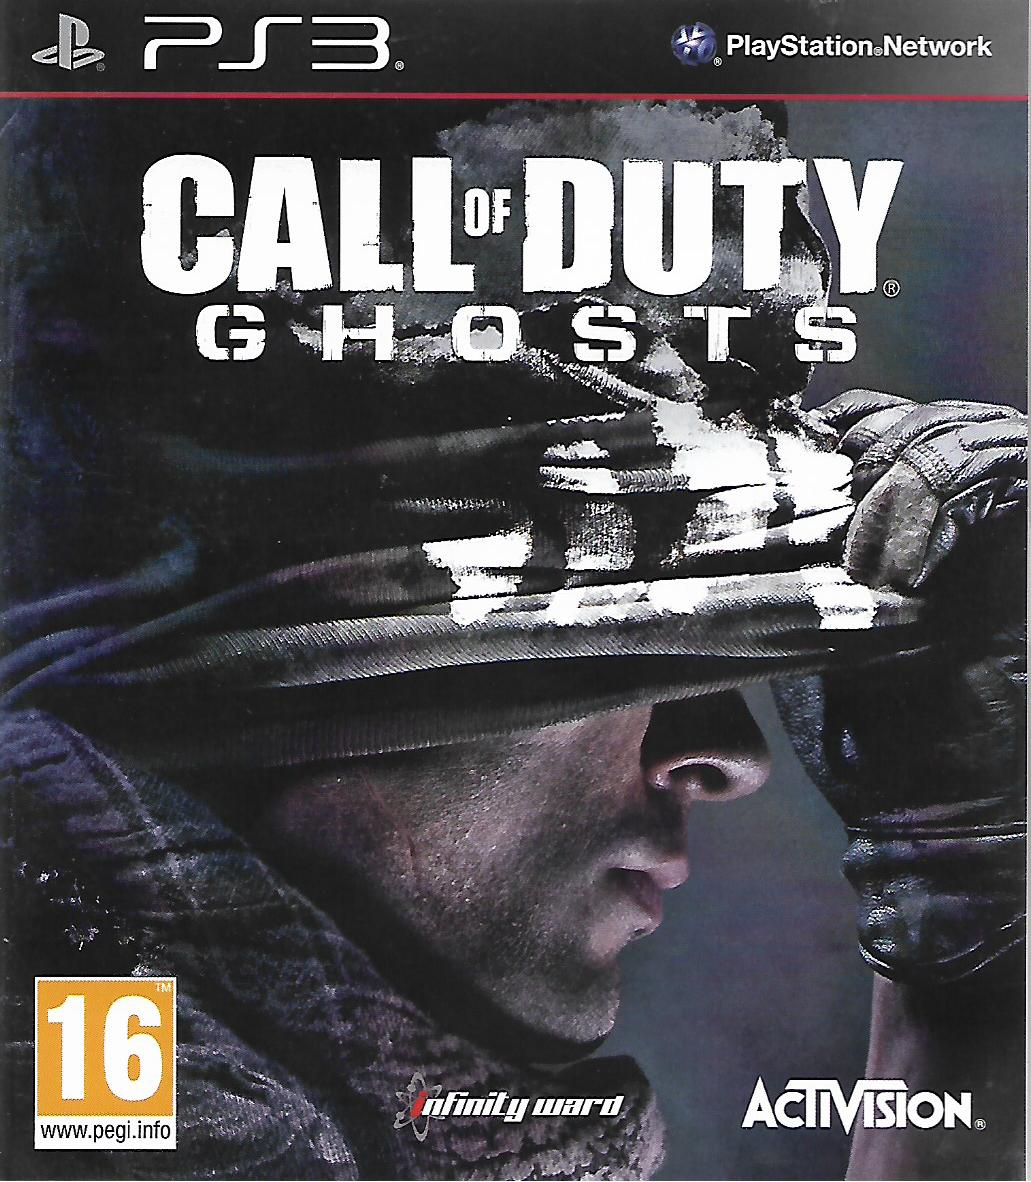 CALL OF DUTY GHOSTS (PS3 - bazar)